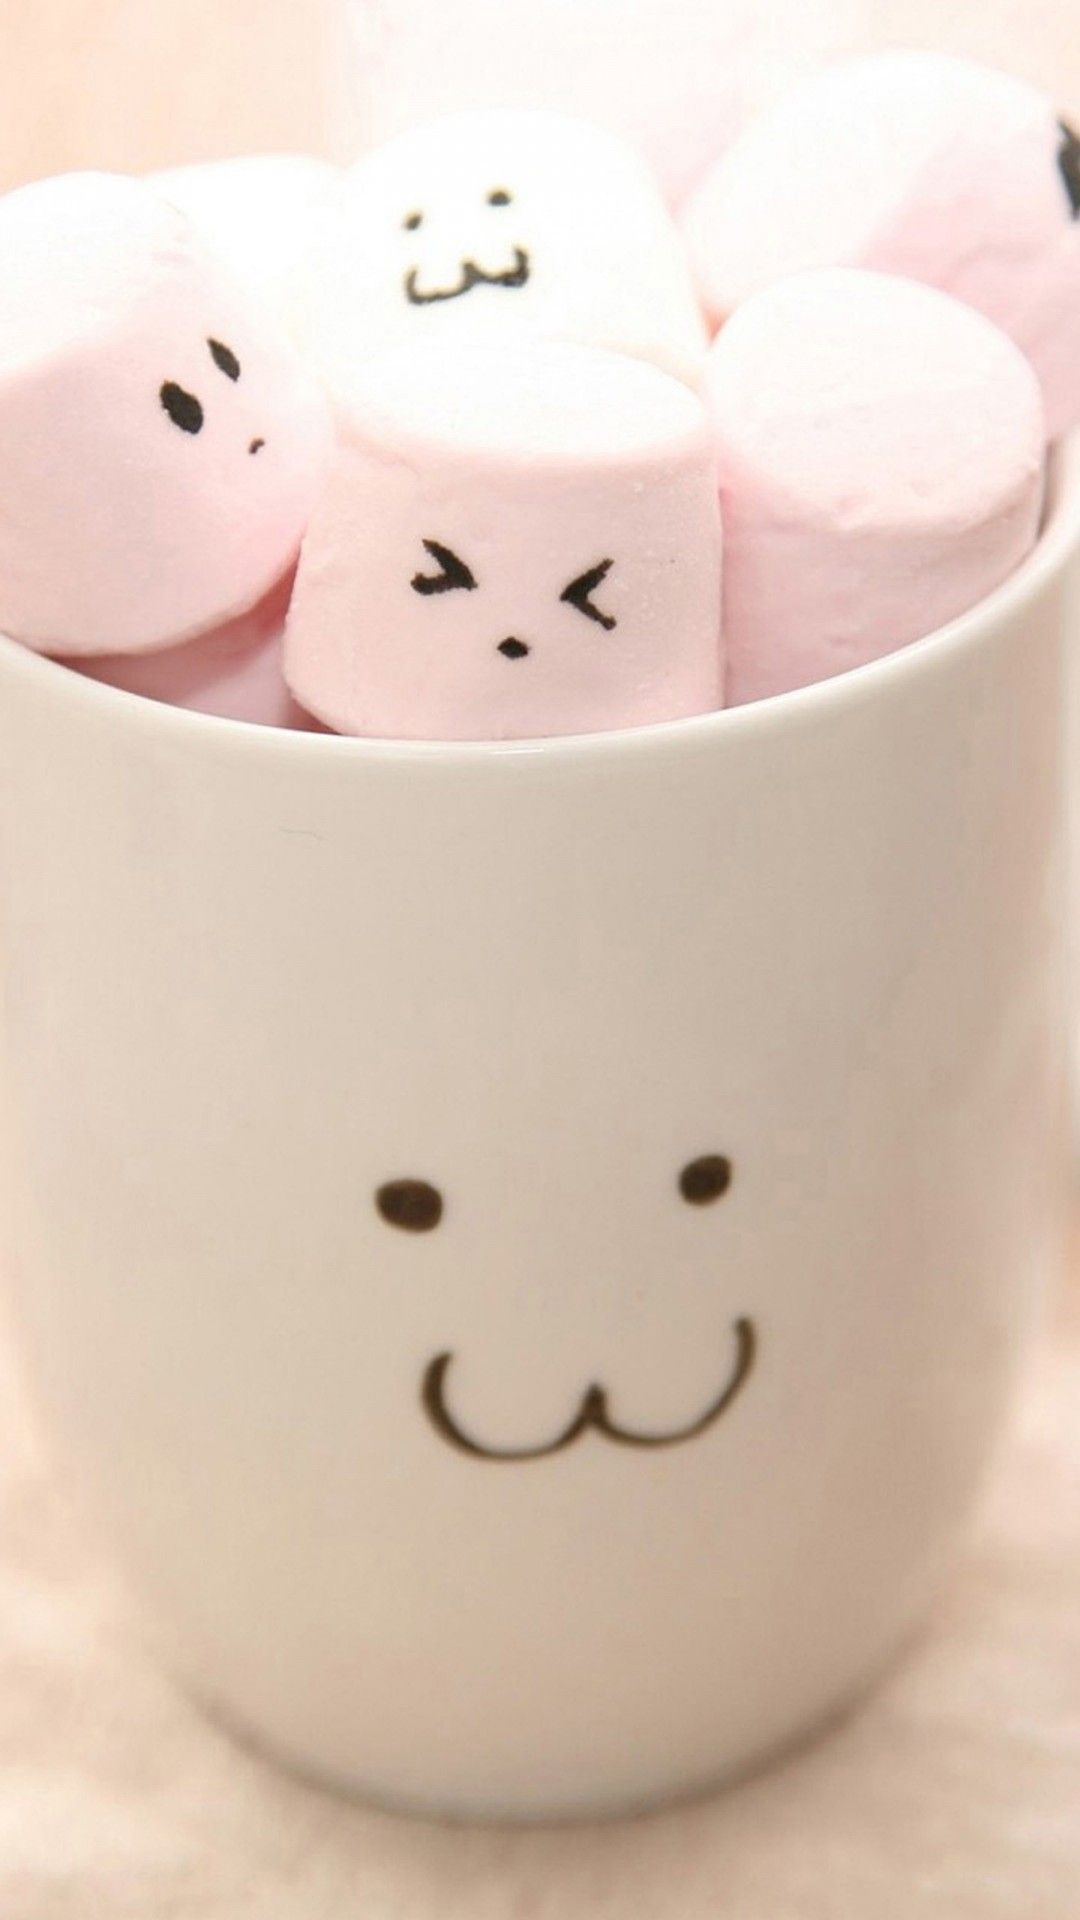 Cute marshmallows mobile wallpaper pinterest mobile cute marshmallow wallpaper iphone is high definition phone wallpaper you can make this wallpaper for your iphone x backgrounds tablet android or ipad voltagebd Gallery